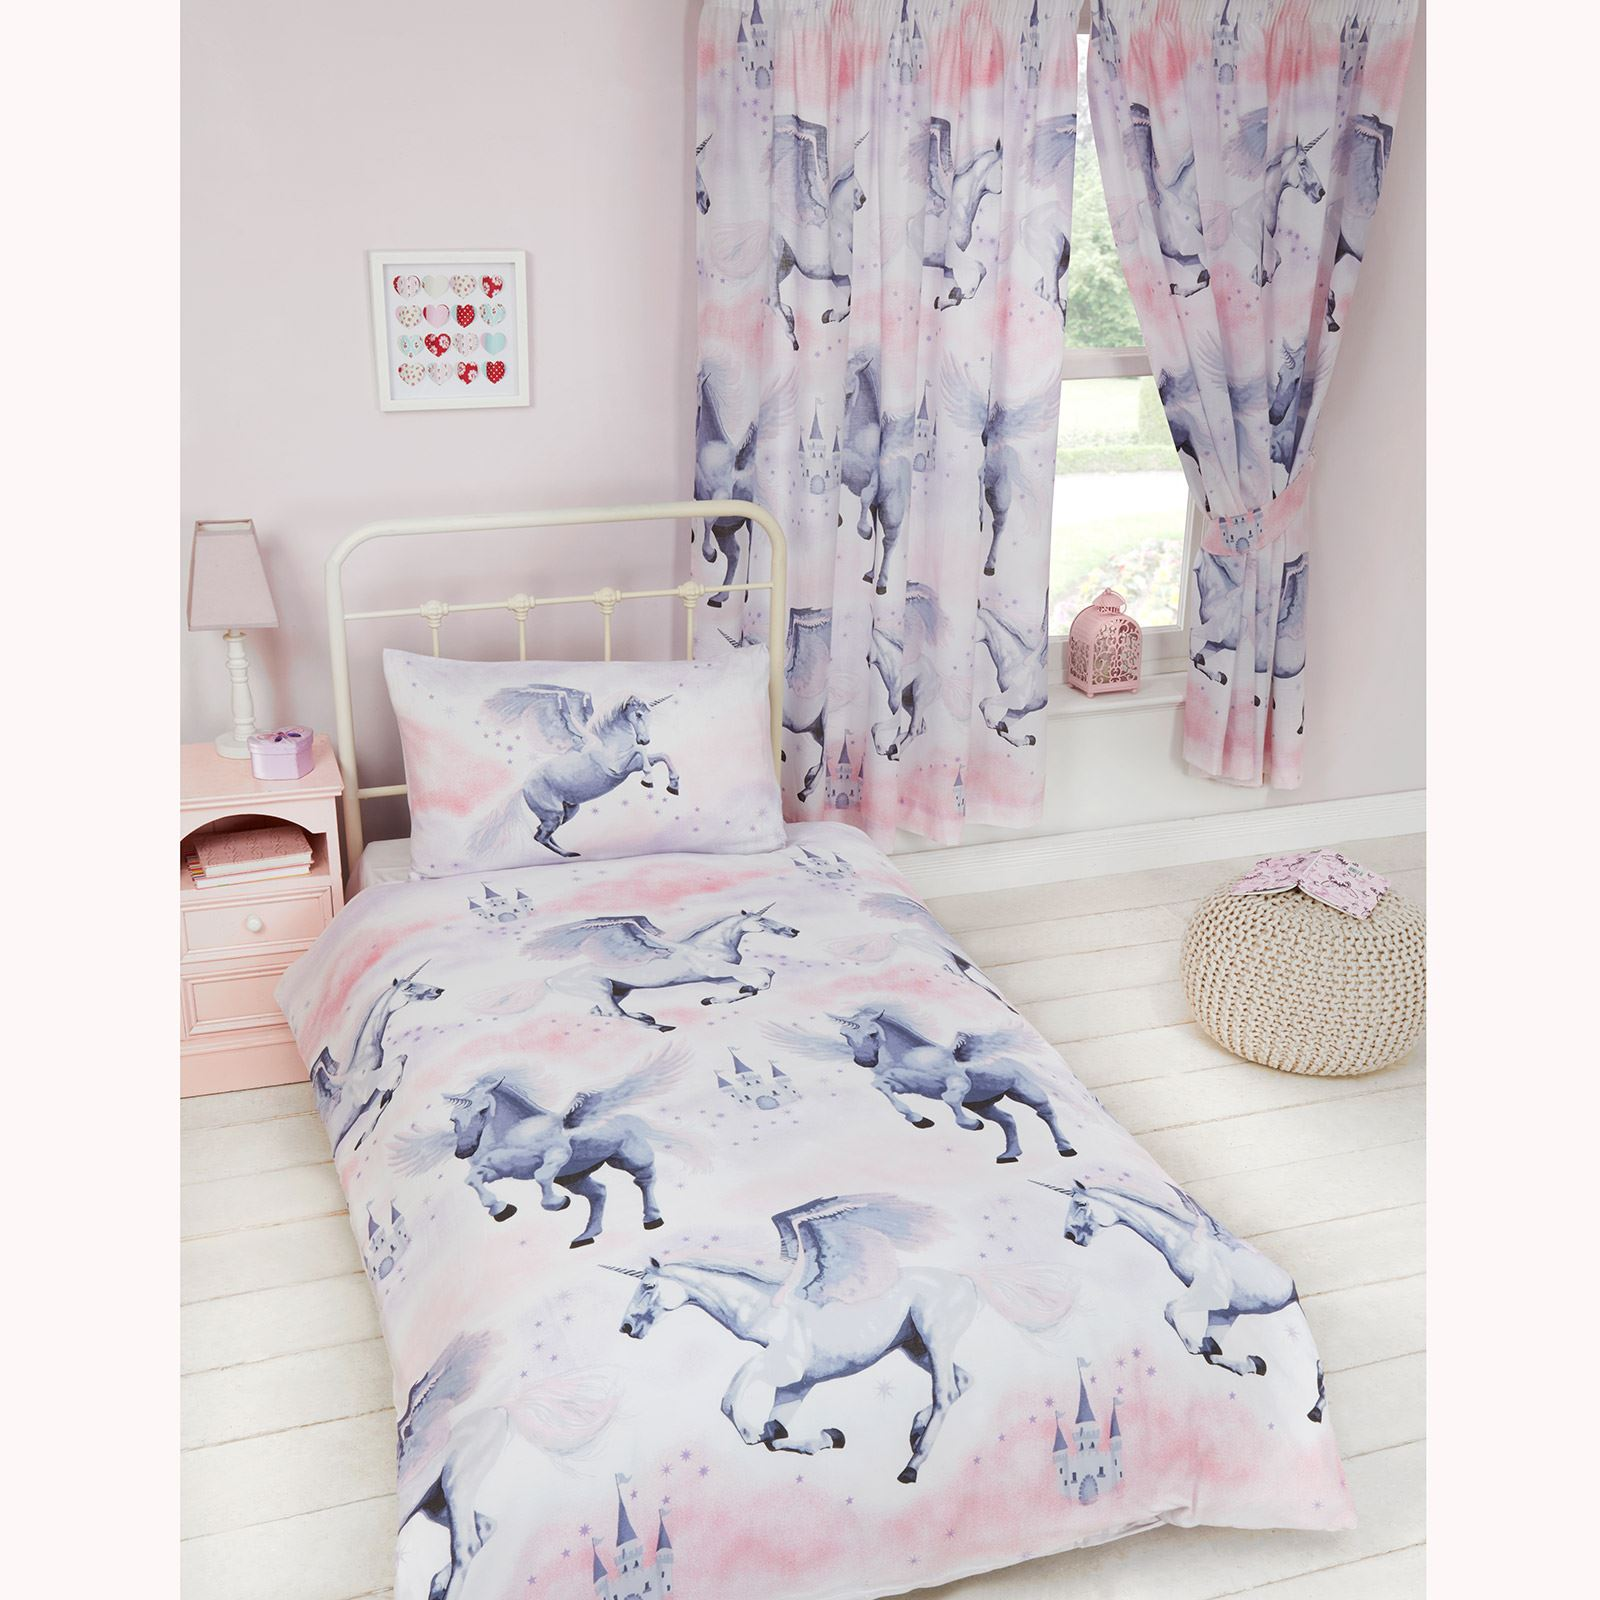 STARDUST UNICORN 4 In 1 JUNIOR COT BED BEDDING BUNDLE DUVET COVER SET PRINCESS